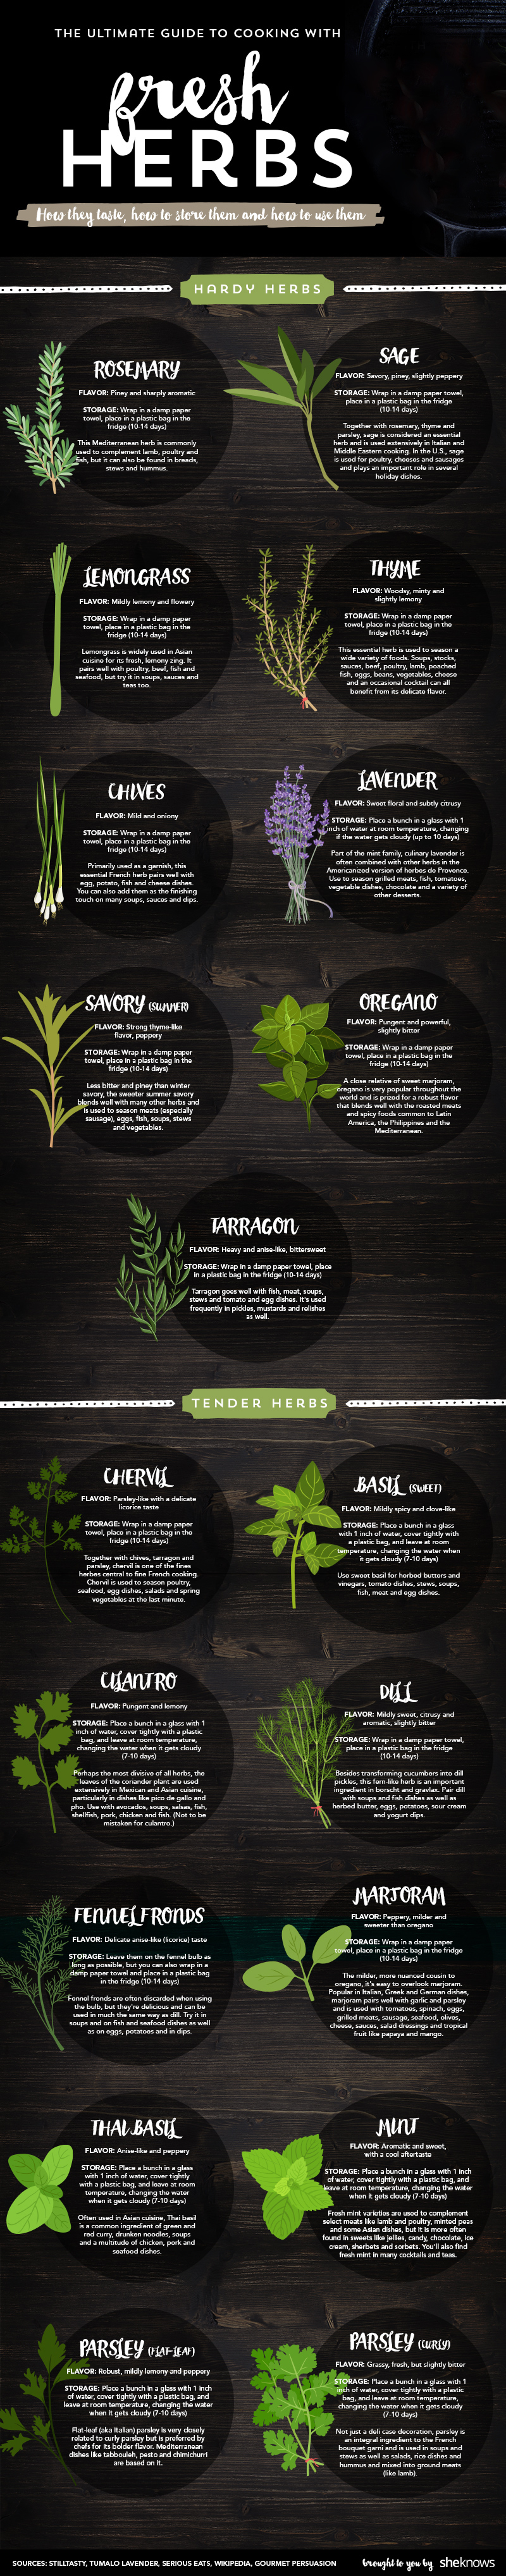 Popular Fresh Herbs For Cooking: Their Tastes And Best Uses Infographic